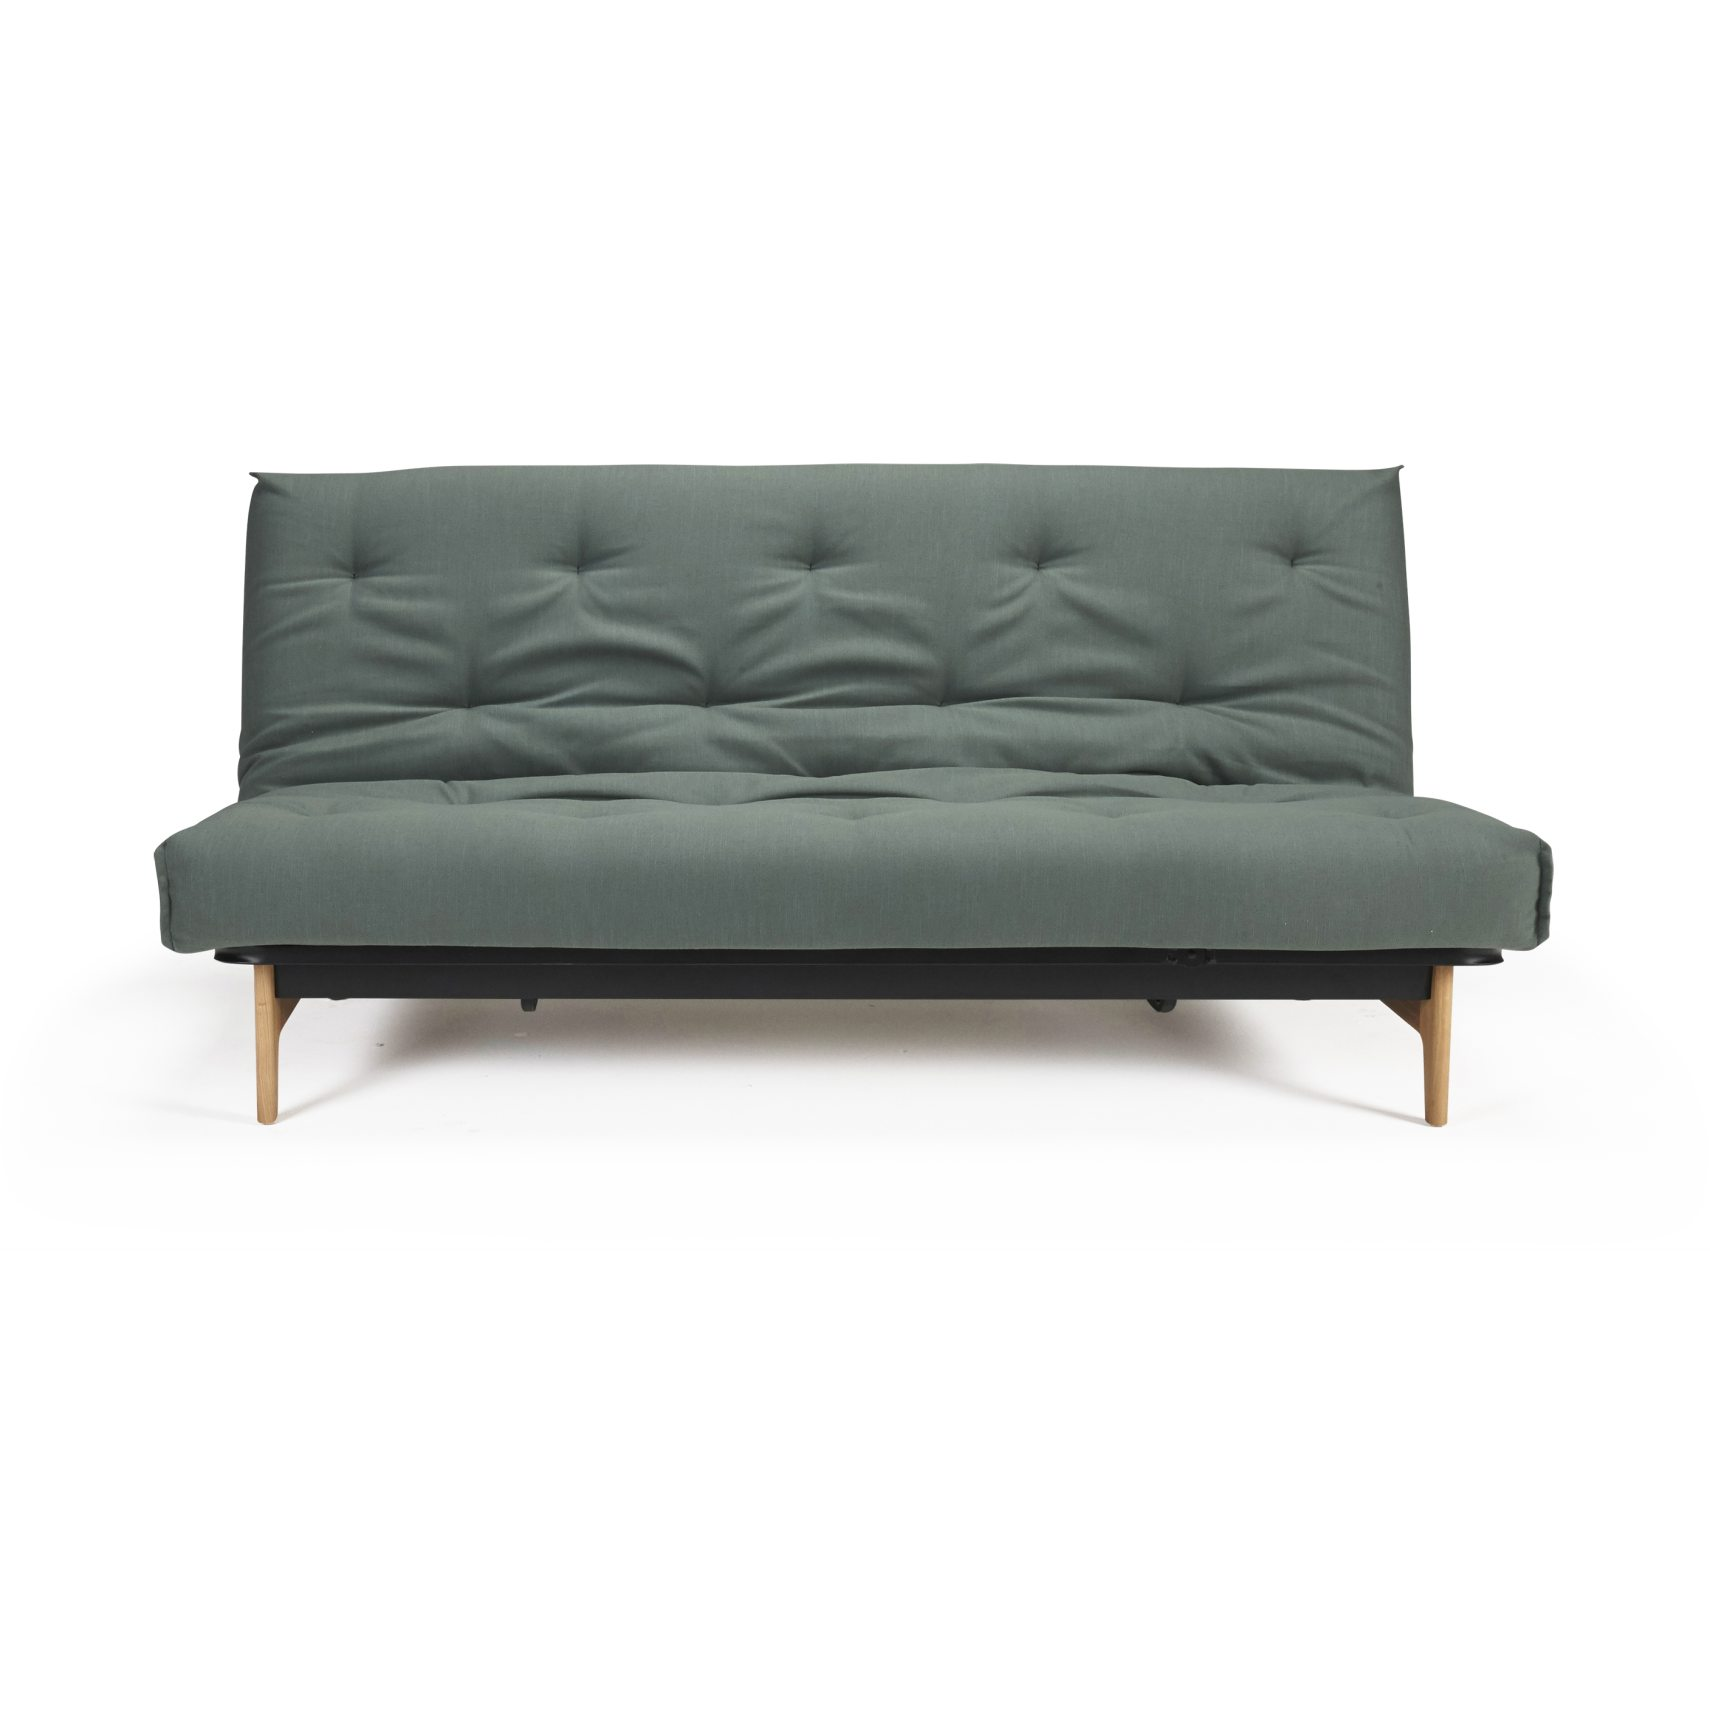 Innovation Living - Aslak Sovesofa - Sovesofa